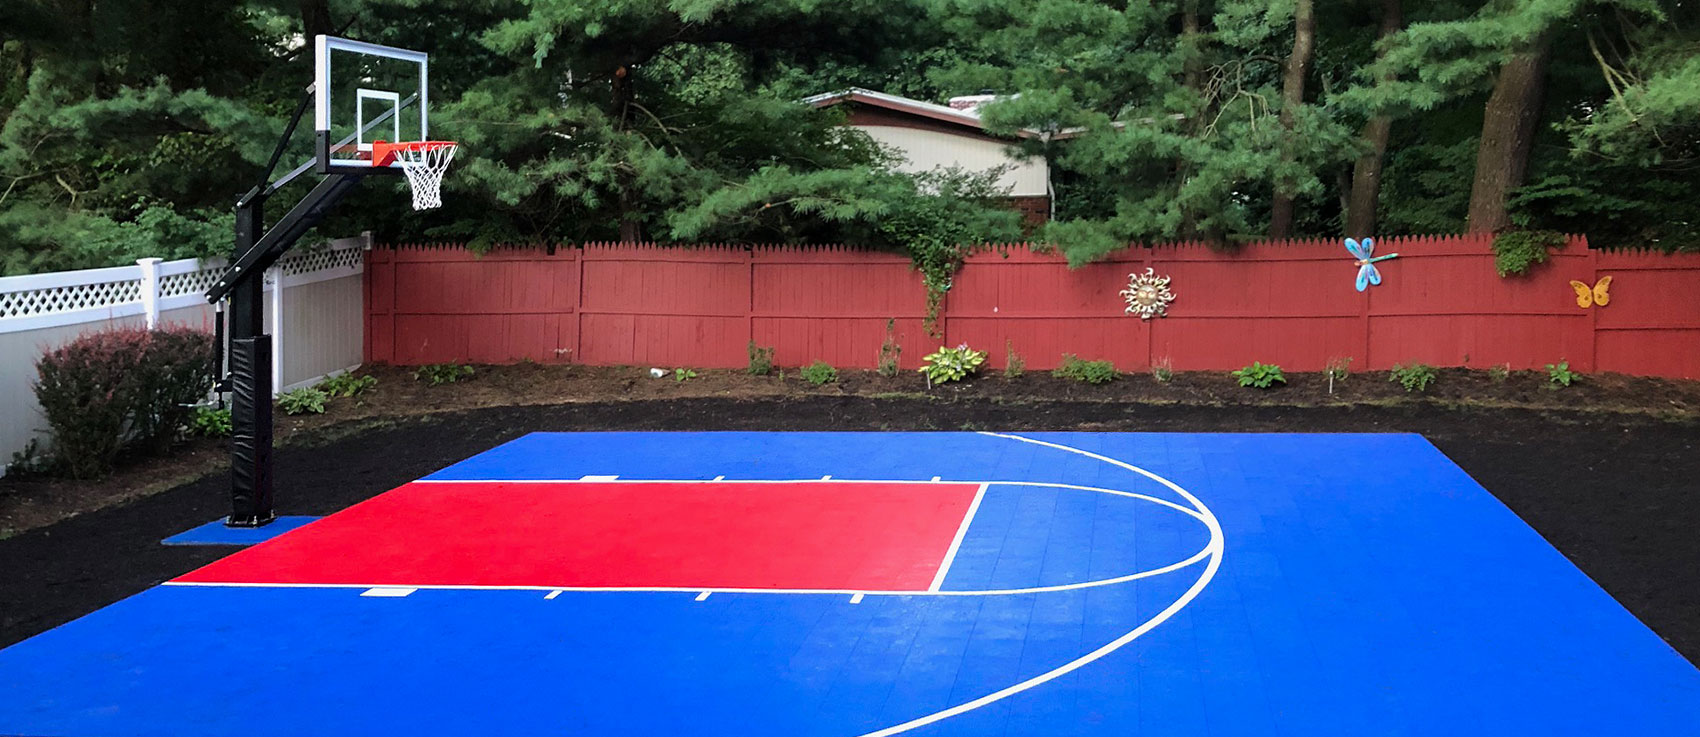 Diy Backyard Courts Dunkstar Diy Backyard Courts